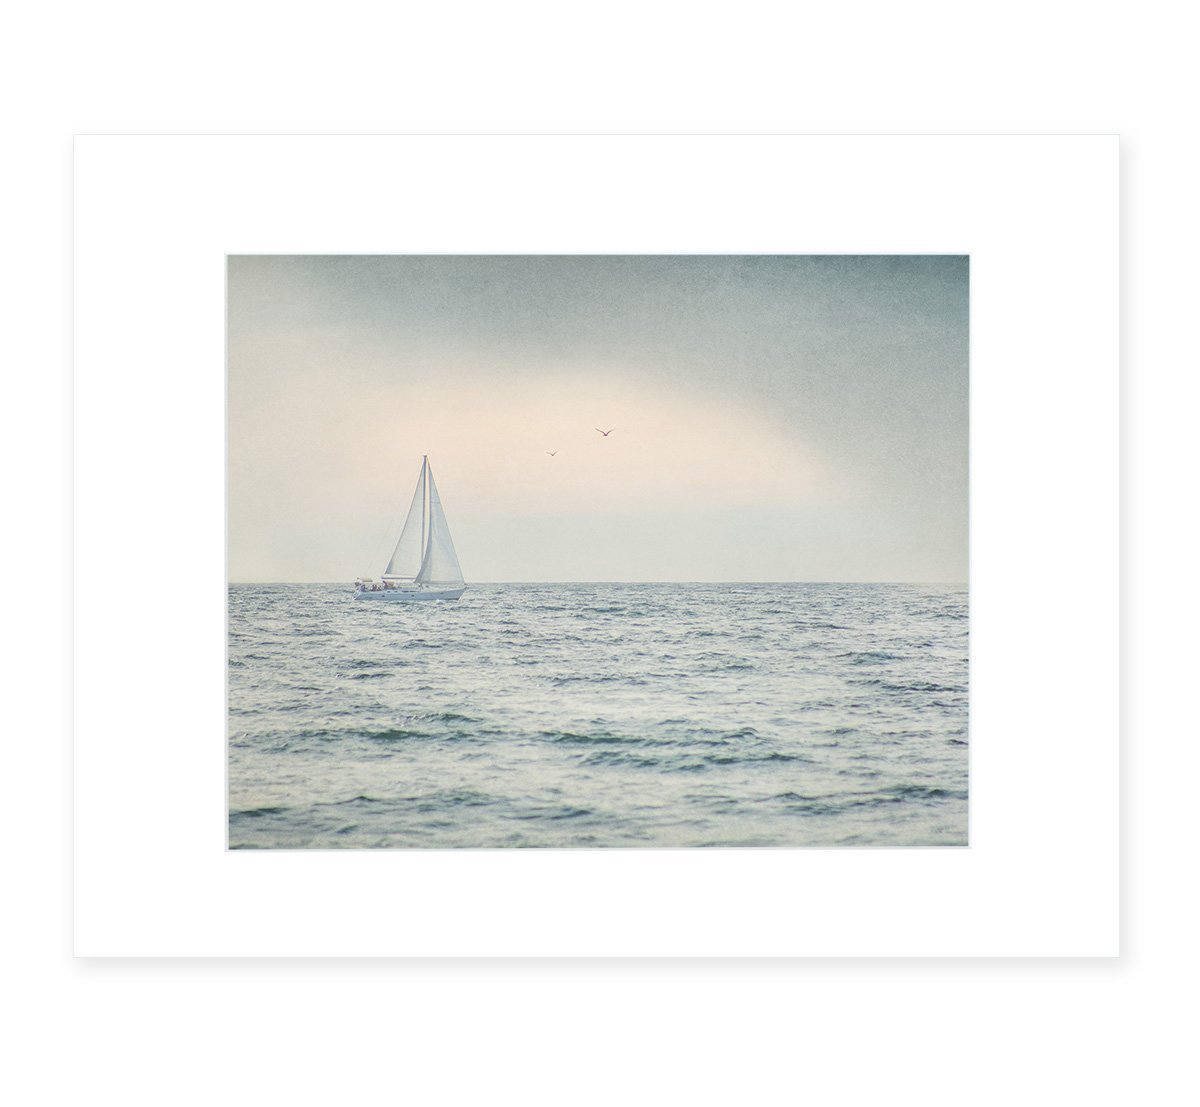 Grey Coastal Wall Art, Nautical Sail boat Picture, Ocean Seascape Beach Cottage Decor, 8x10 Matted Photographic Print (fits 11x14 frame), 'Sailing Into Rain'